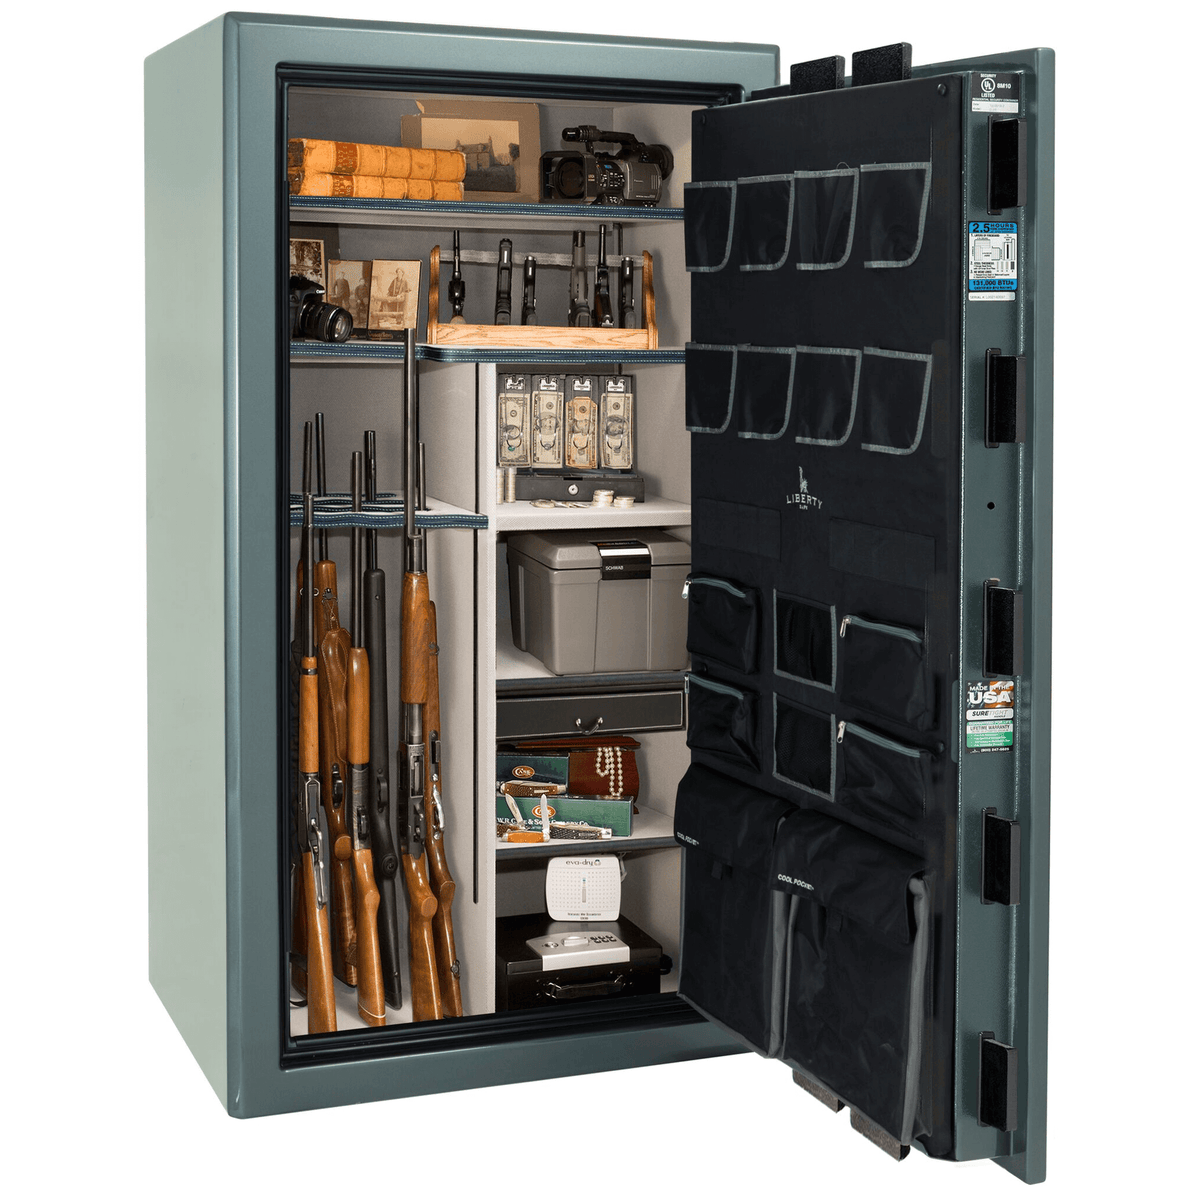 "Presidential | 40 | Level 8 Security | 150 Minute Fire Protection | Forest Mist Gloss | Black Electronic Lock | 65.5""(H) x 36""(W) x 32""(D)"